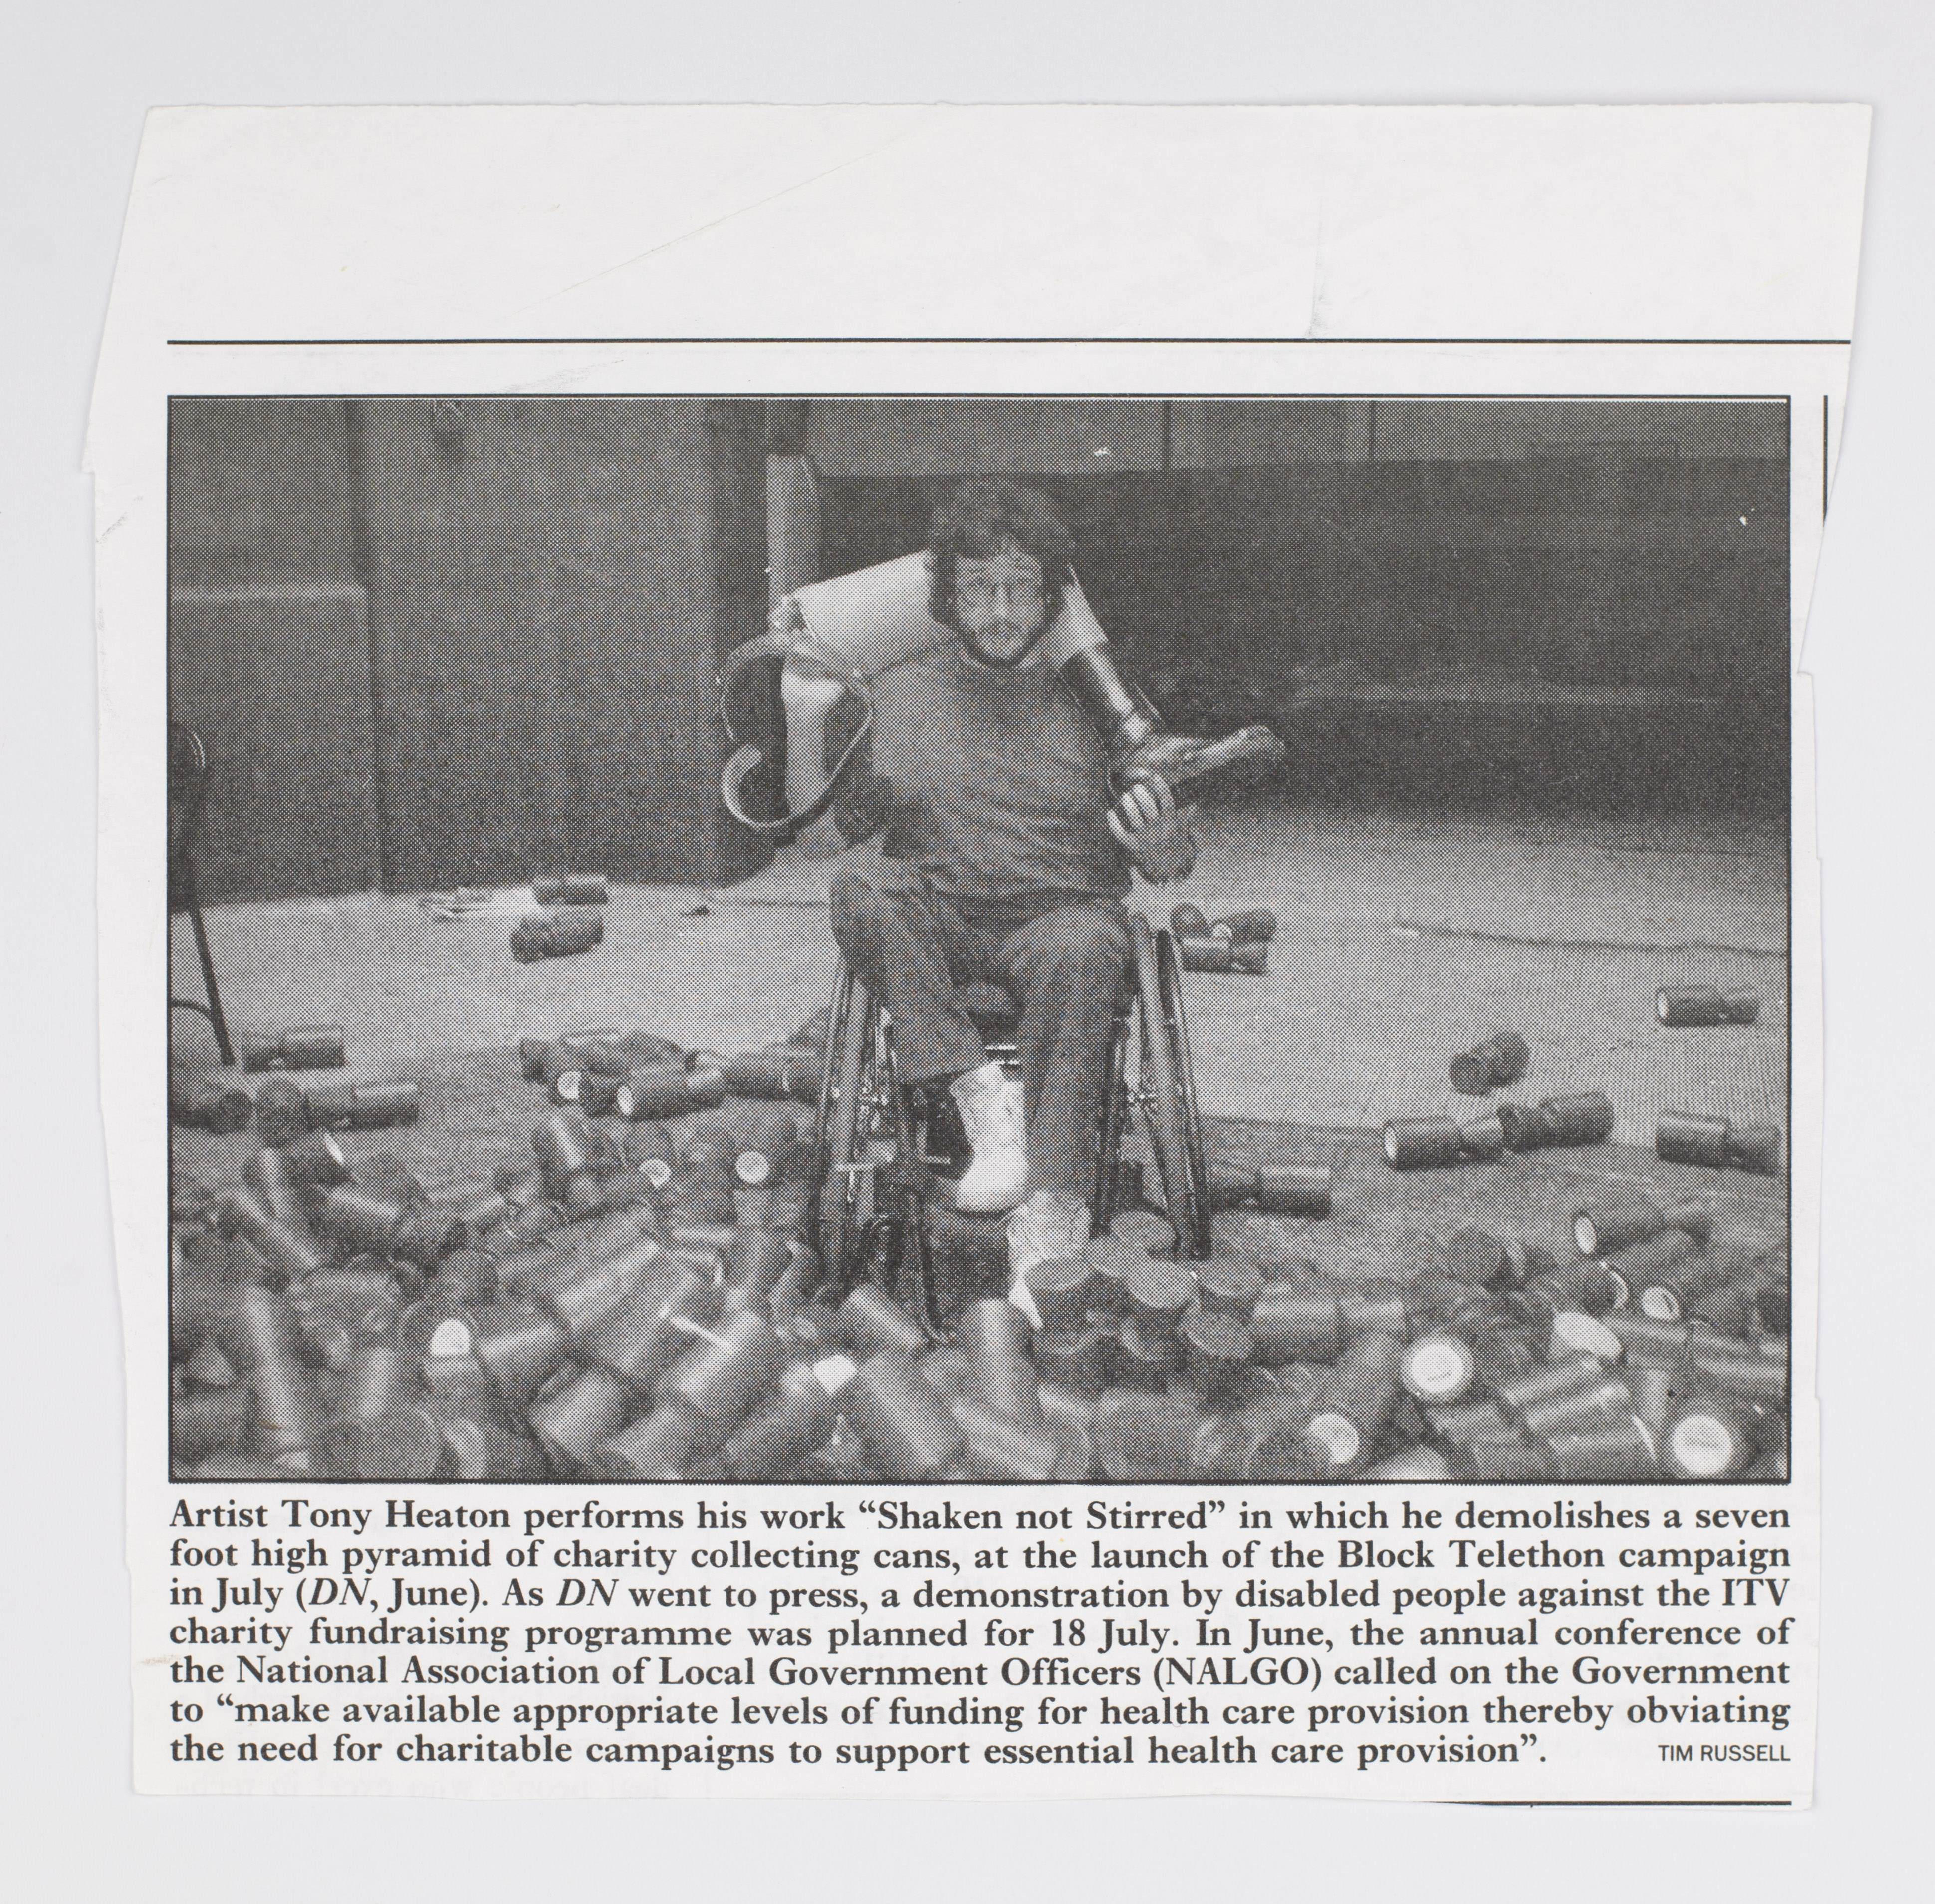 Black and white newspaper image of a young white man sitting in a wheelchair with a prosthetic leg slung over his shoulders. He is surrounded by knocked-over charity collecting cans